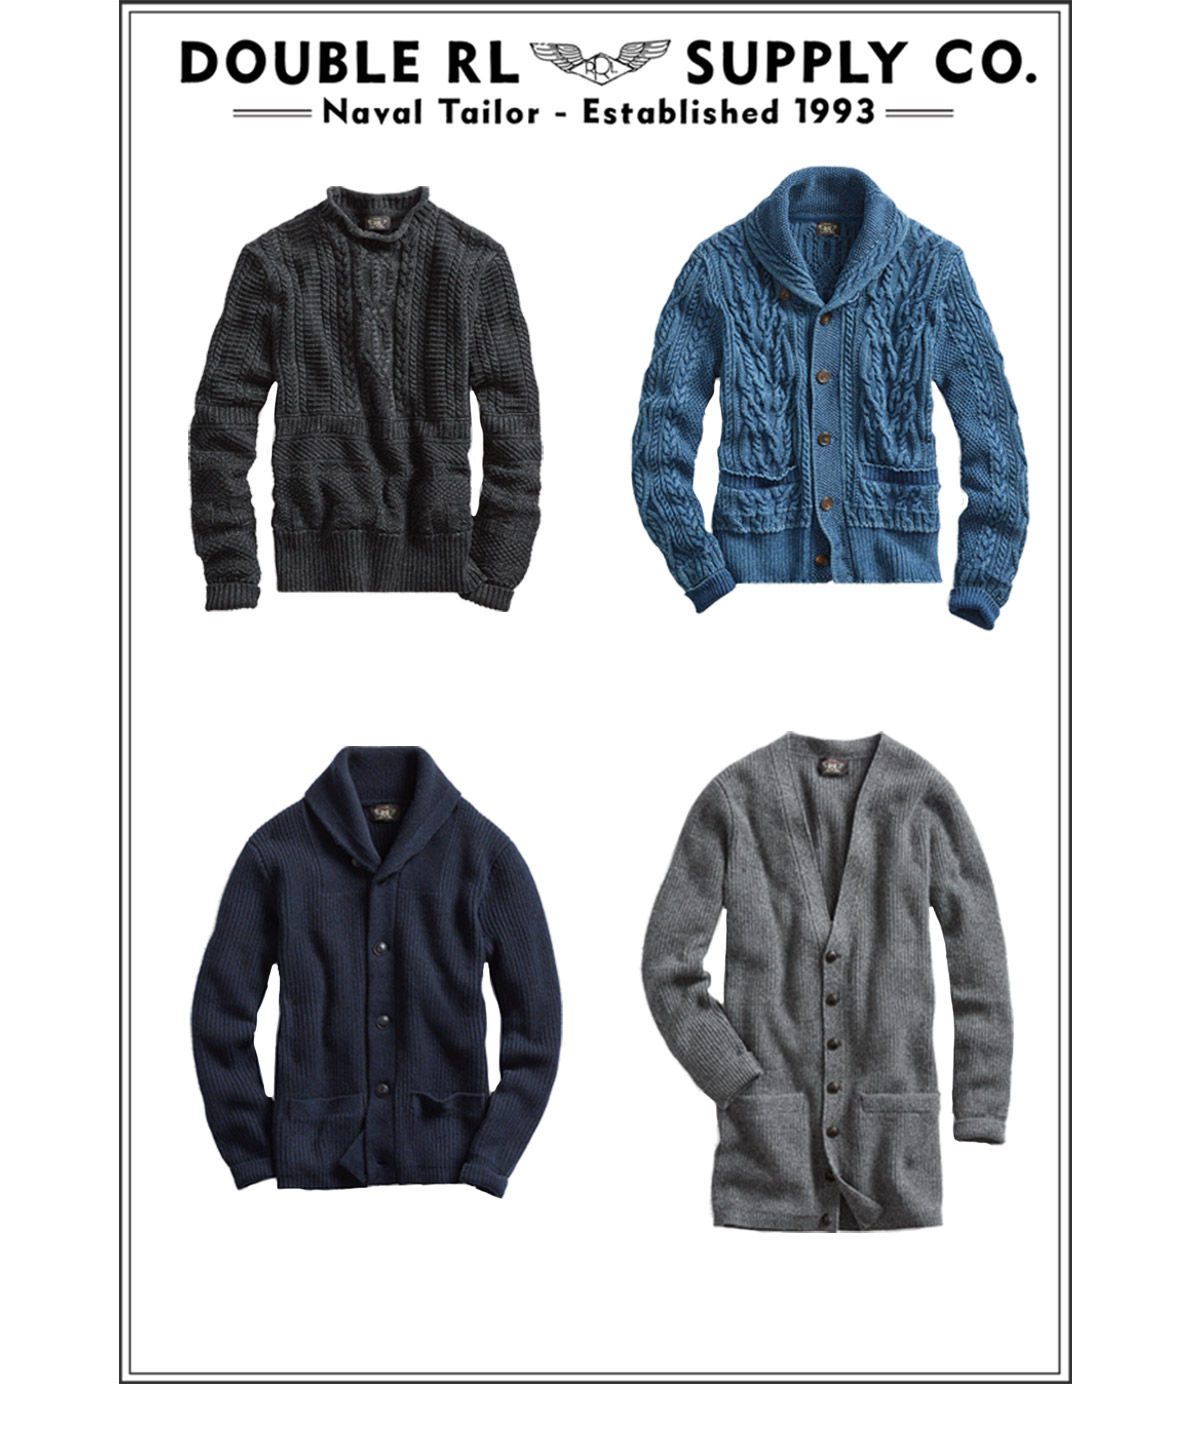 Grid of sweaters, from rollnecks to cardigans, with different stitches